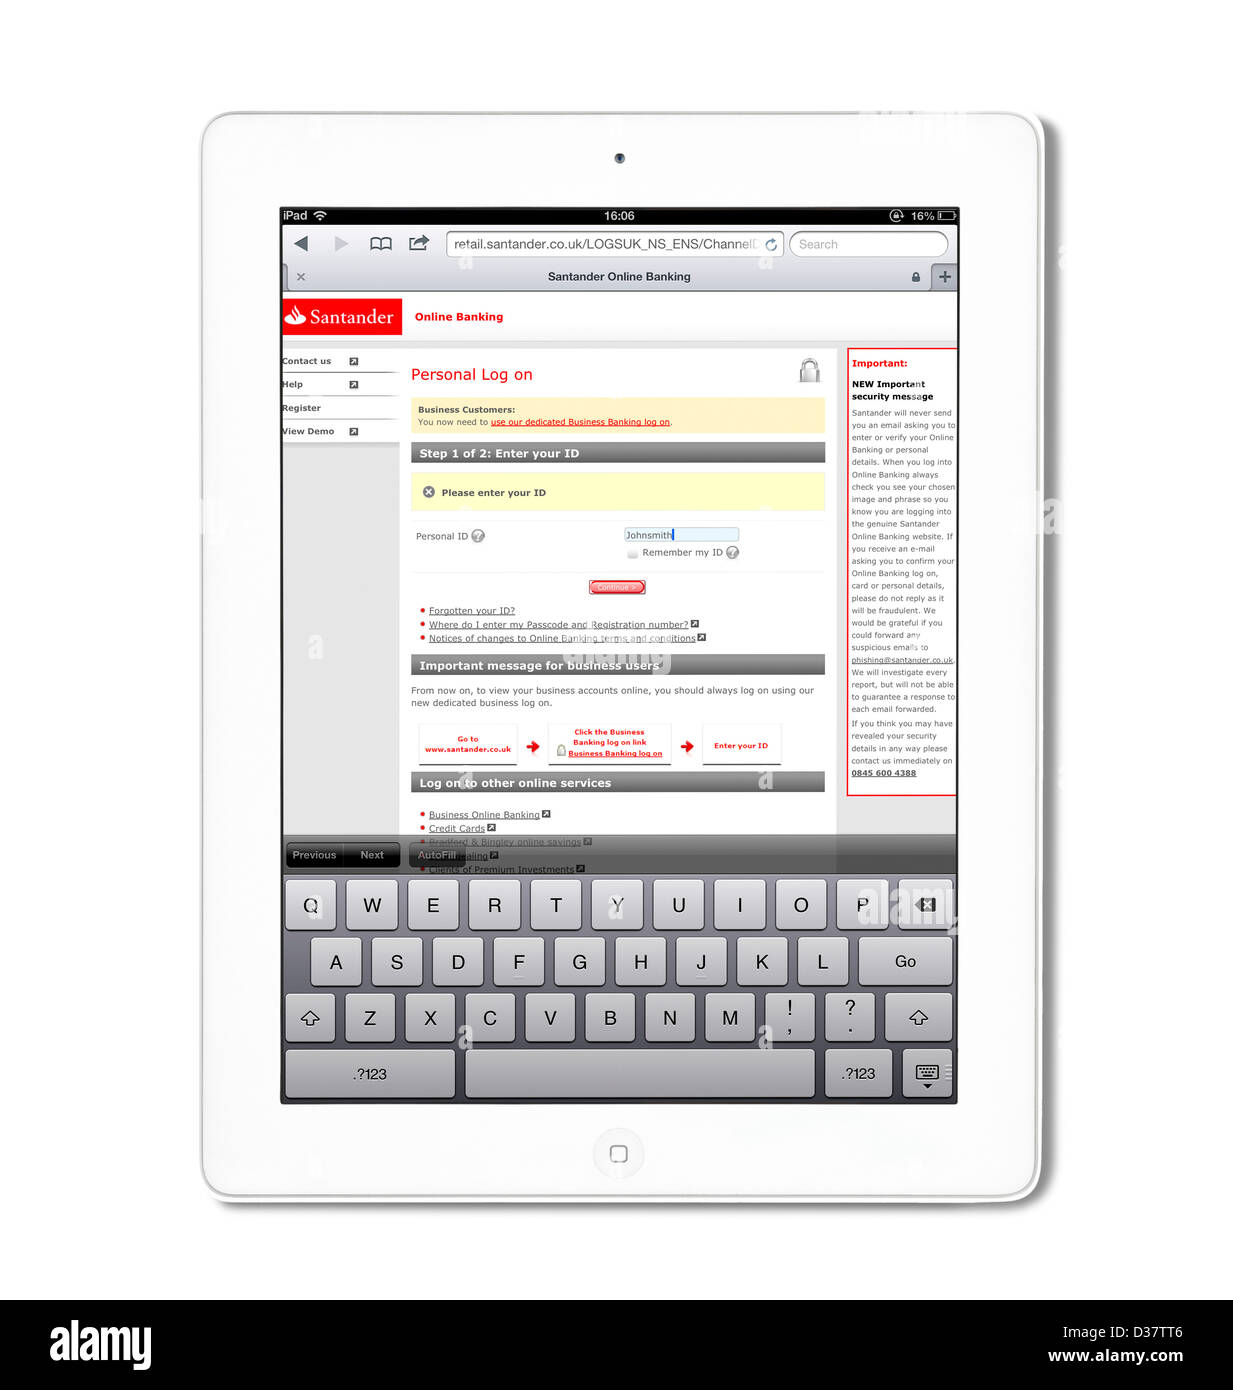 Santander online banking on a 4th generation Apple iPad tablet computer - Stock Image